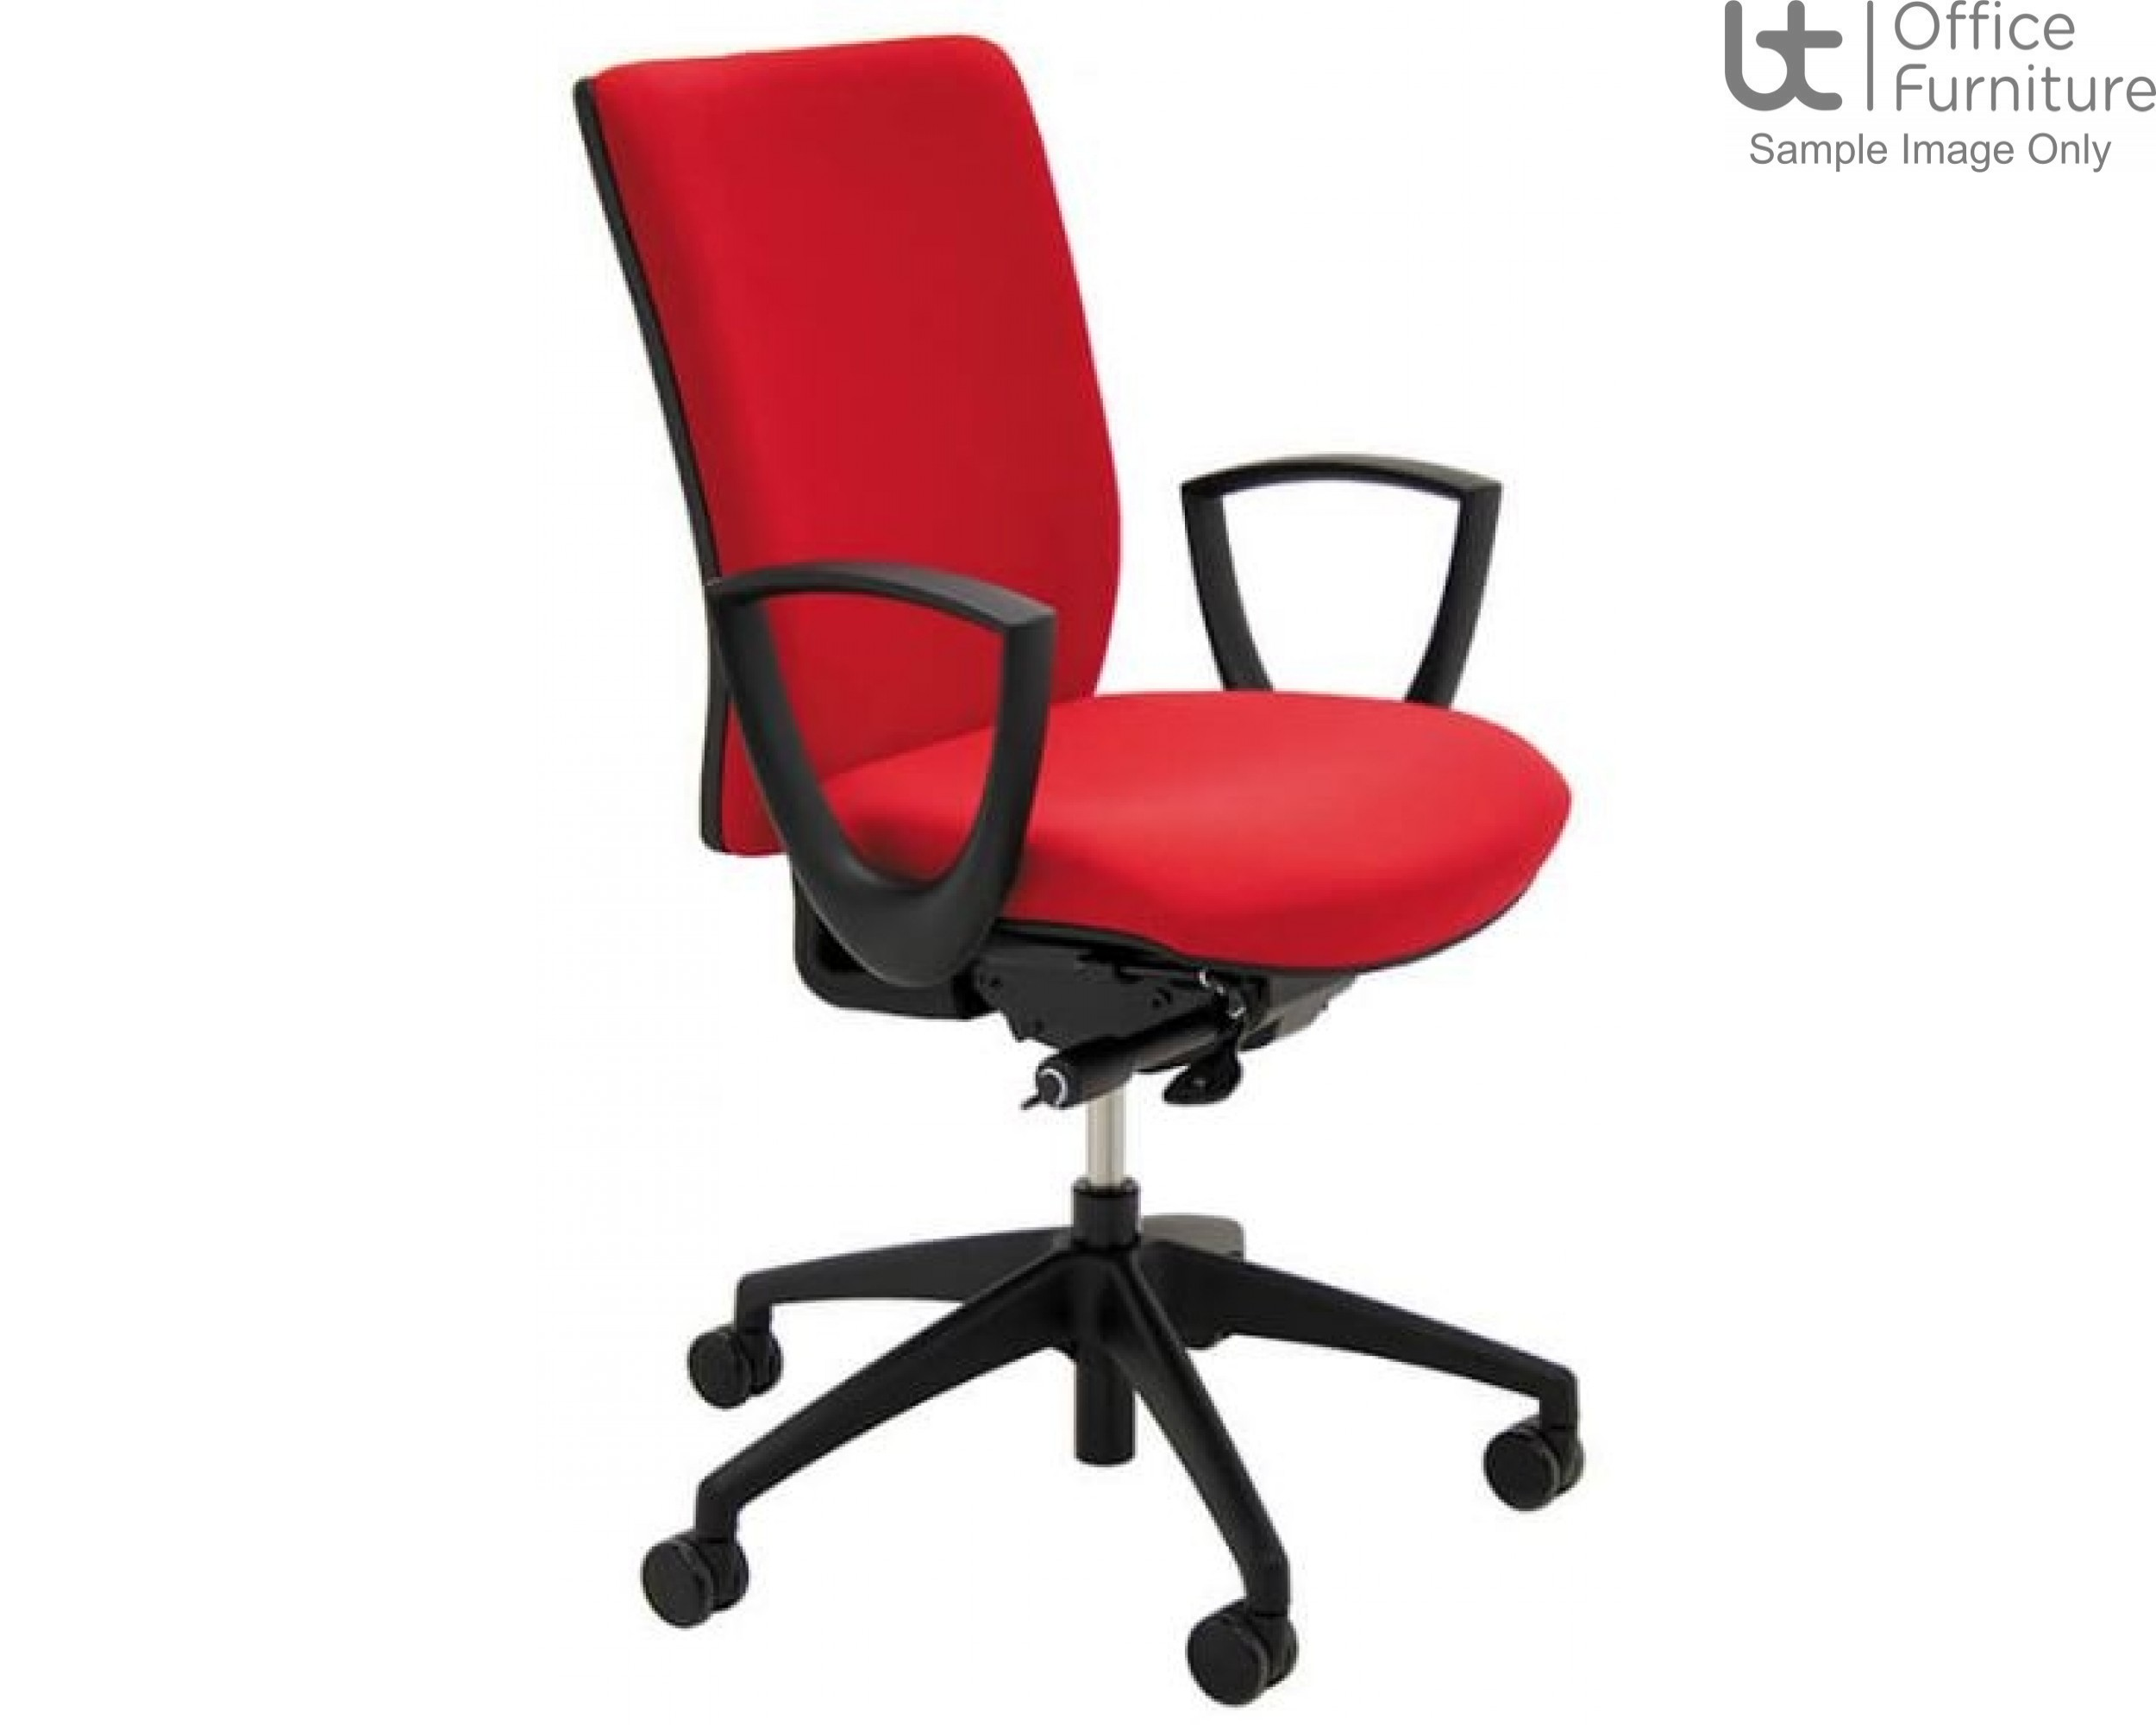 Verco Operator/Task Chair - Pop High Back Task Chair with Arms